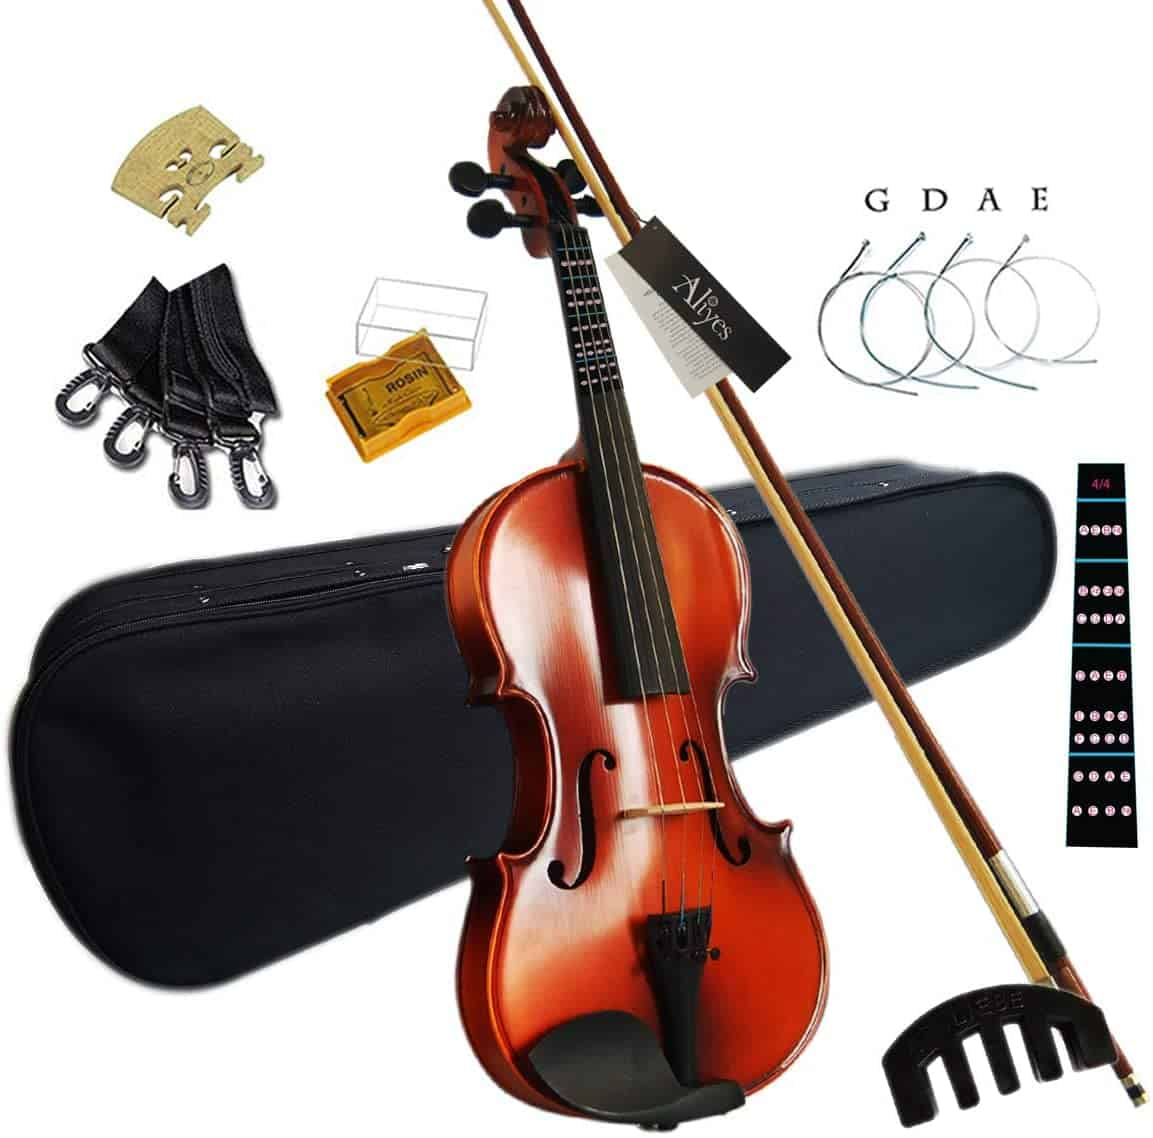 Aliyes Solid Wood Violin Designed for Beginners and Students.